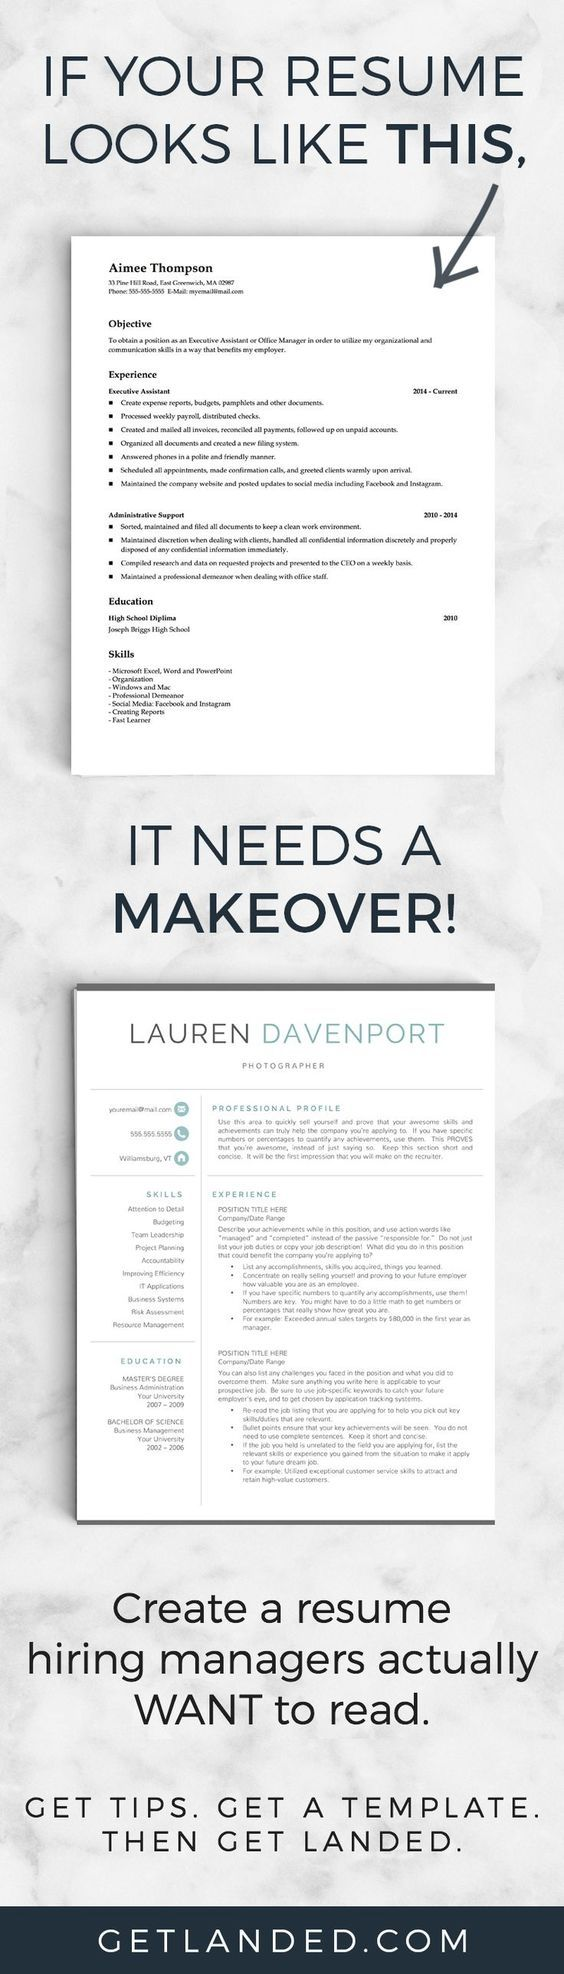 80 of candidates desperately need a resume makeover get a resume makeover today with